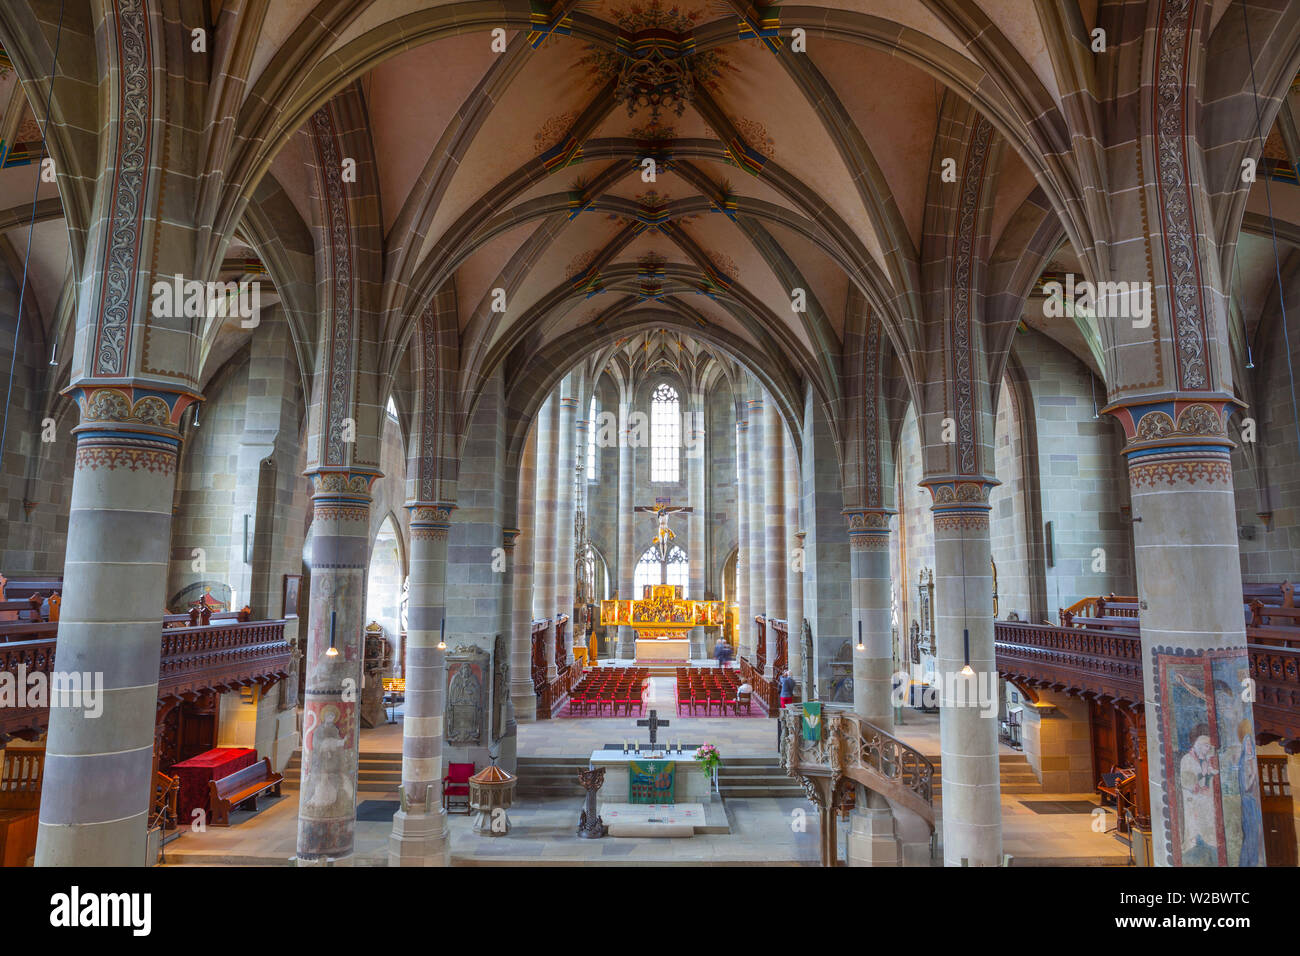 Interior of St Michael's Church, Schwabish Hall, Baden Wurttemberg, Germany Stock Photo